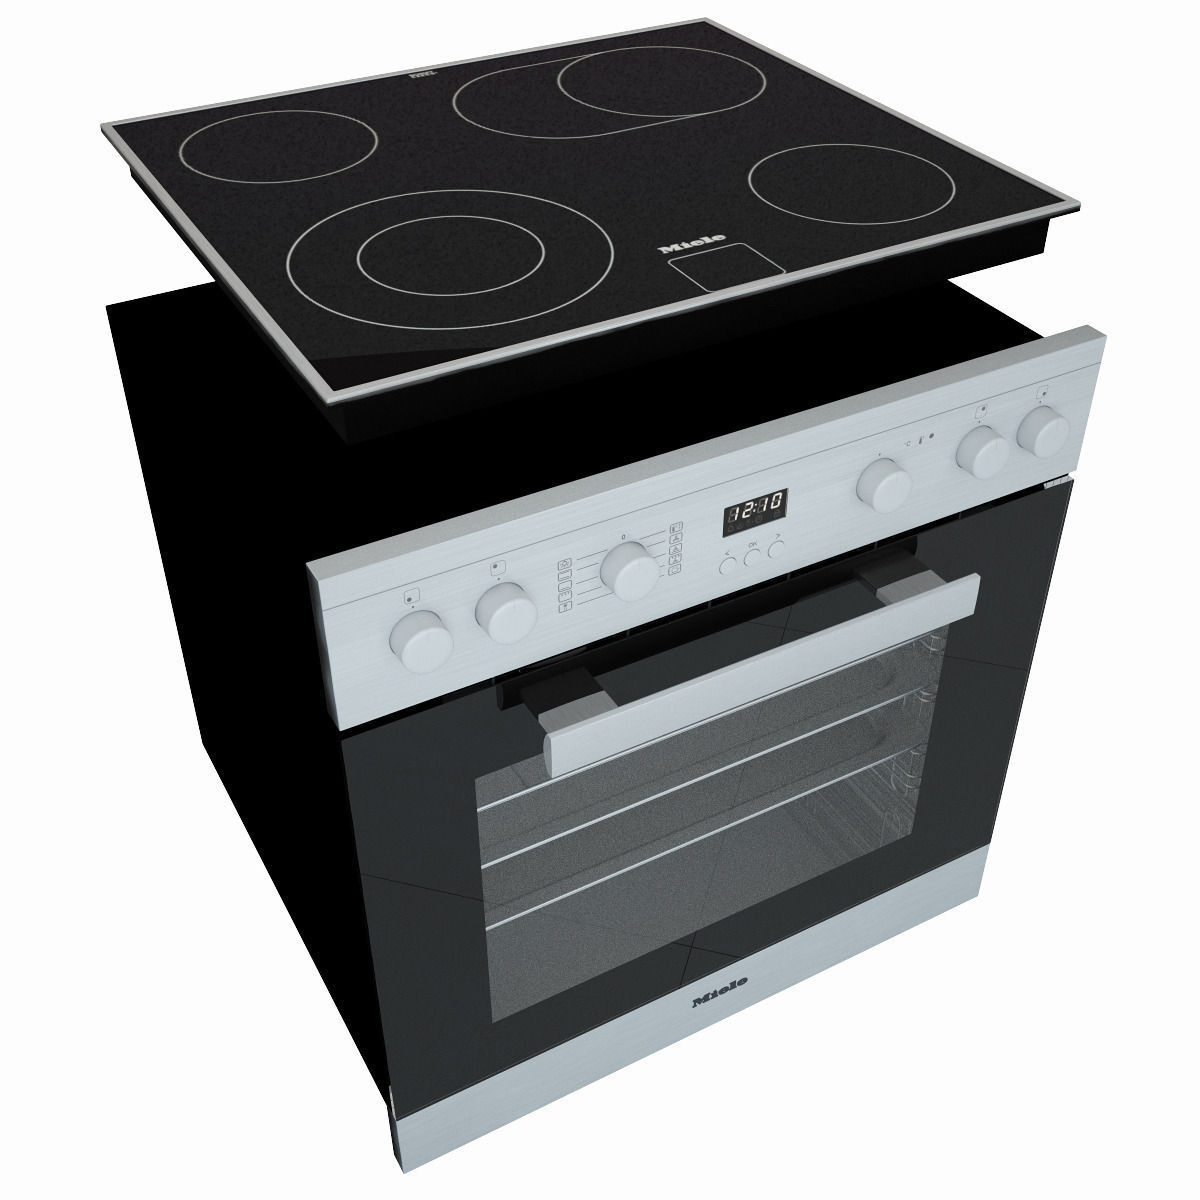 ... Miele H2261 Oven Miele Km6012 Electric Cooking Panel 3d Model Max Obj  Fbx Mtl 3 ...